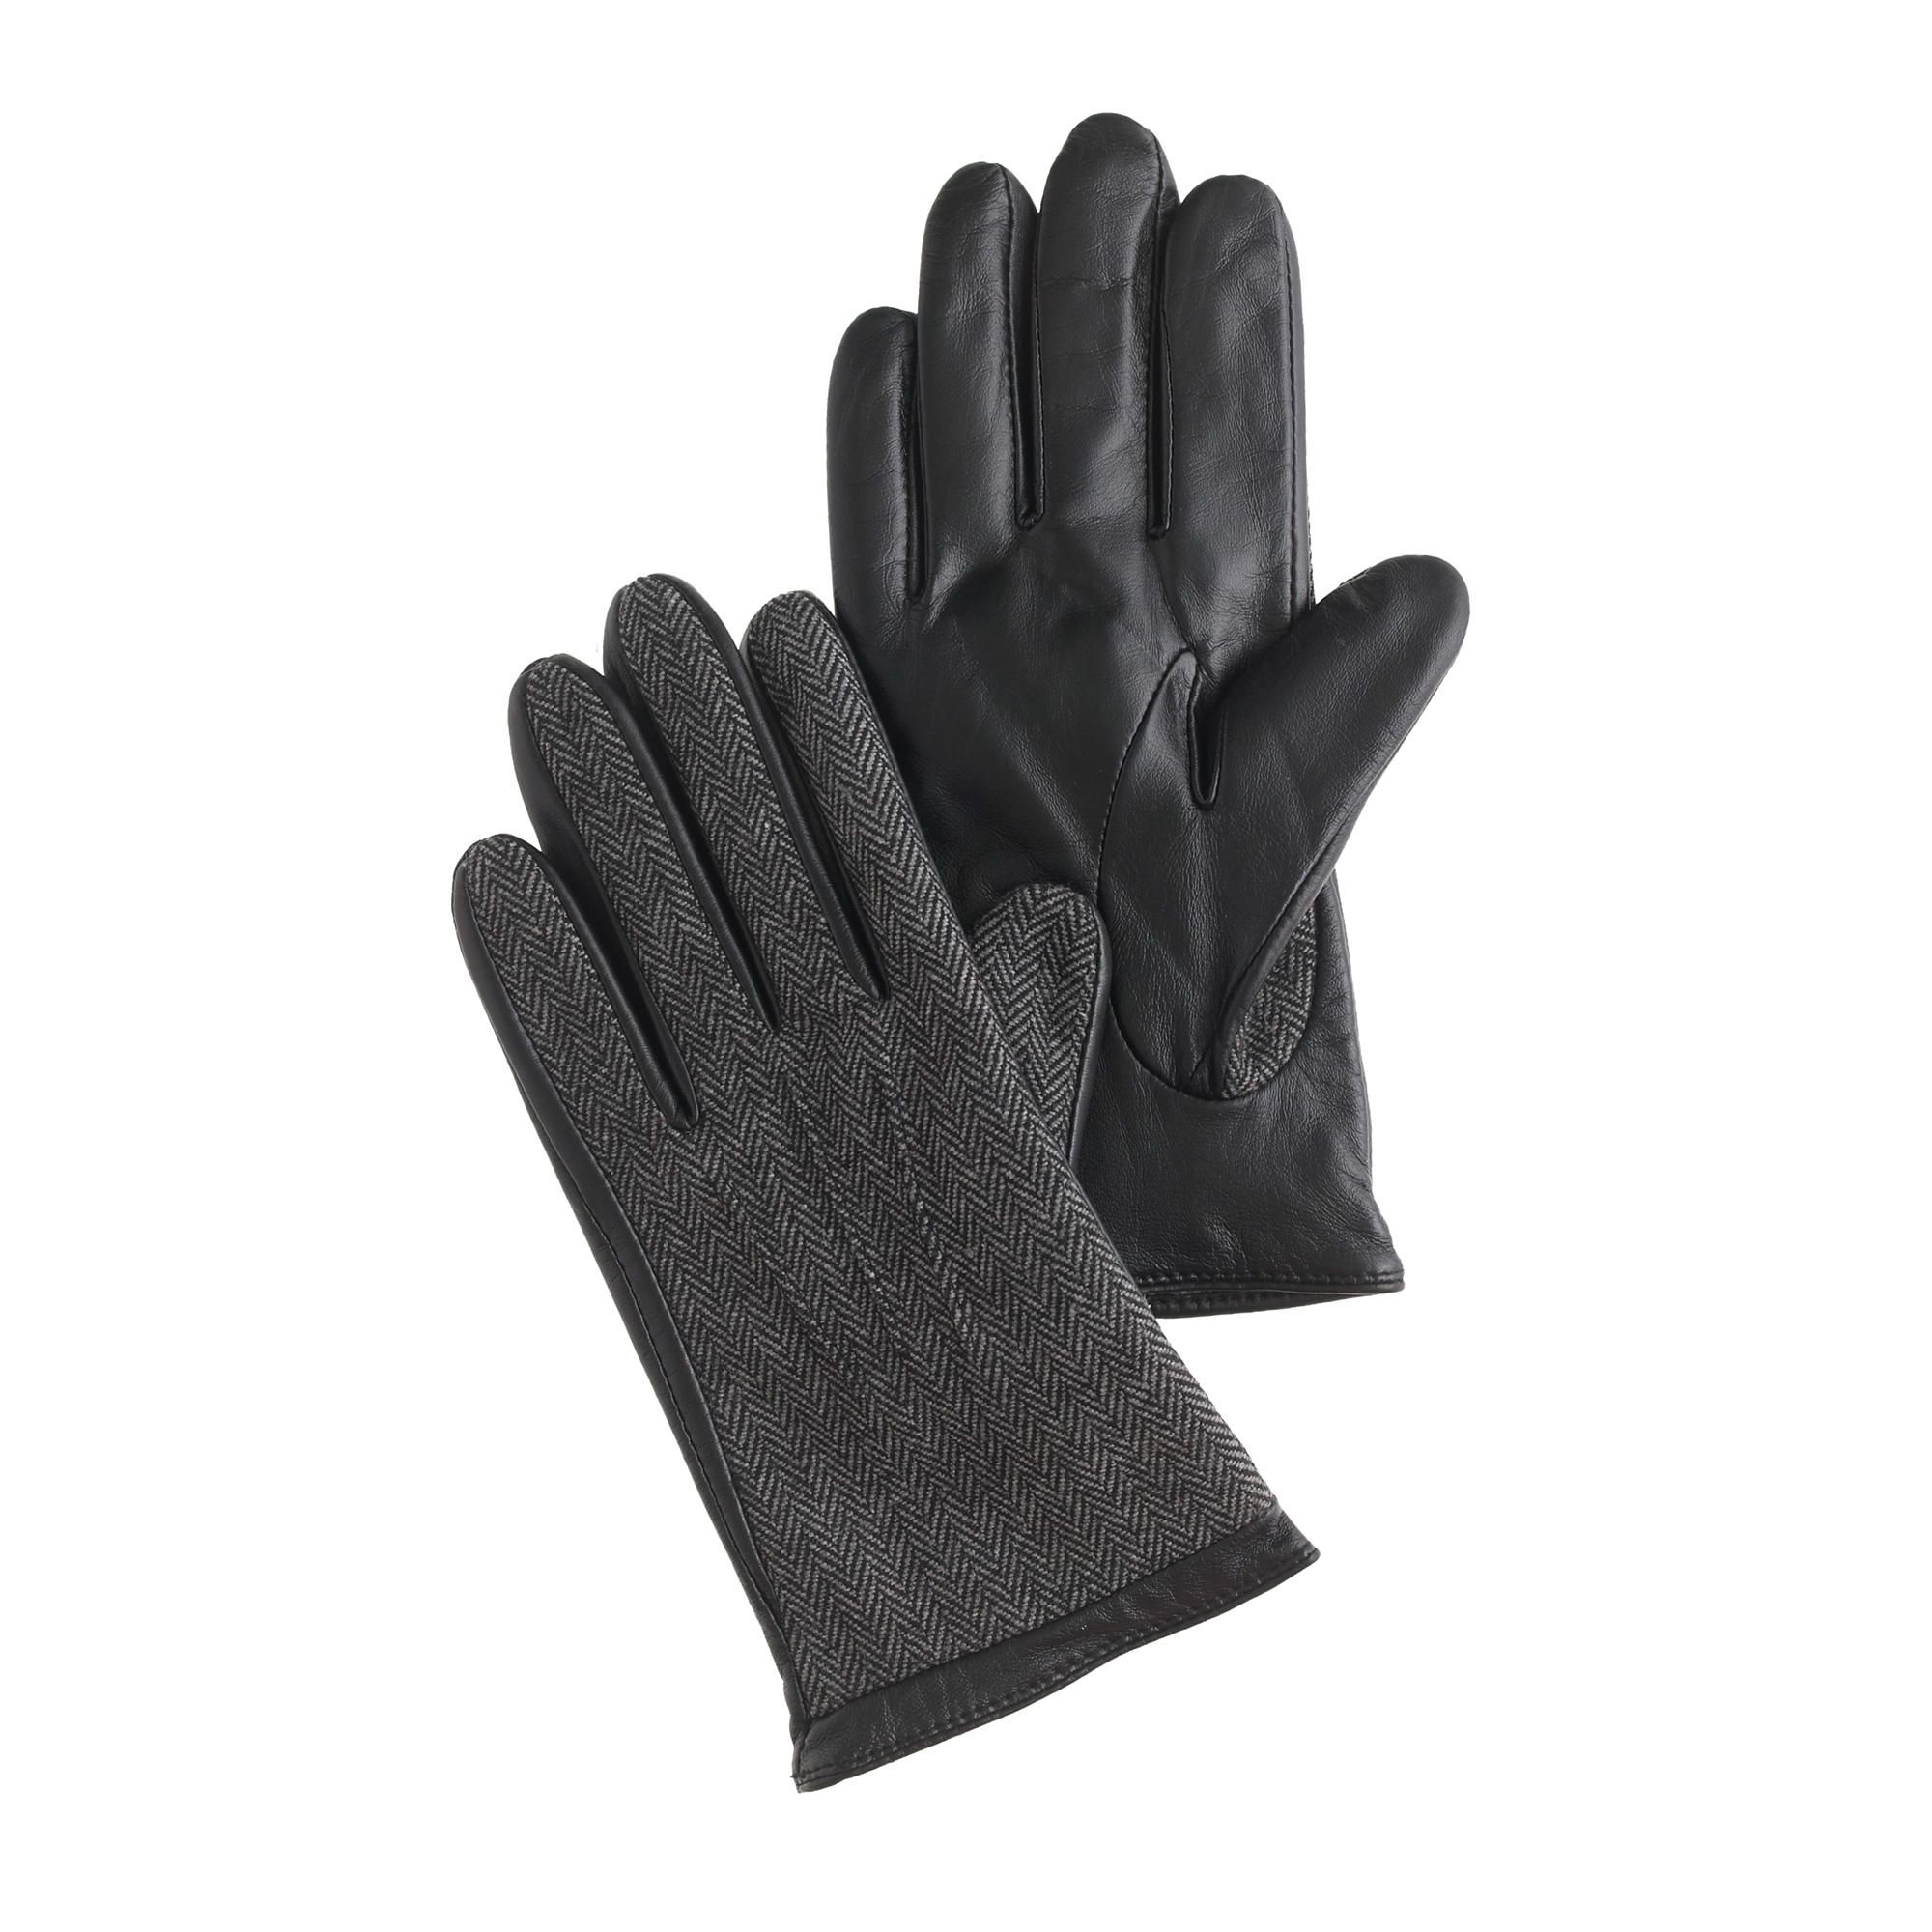 Womens leather smartphone gloves - Tweed And Leather Smartphone Gloves Mens J Crew Look At Women S Too